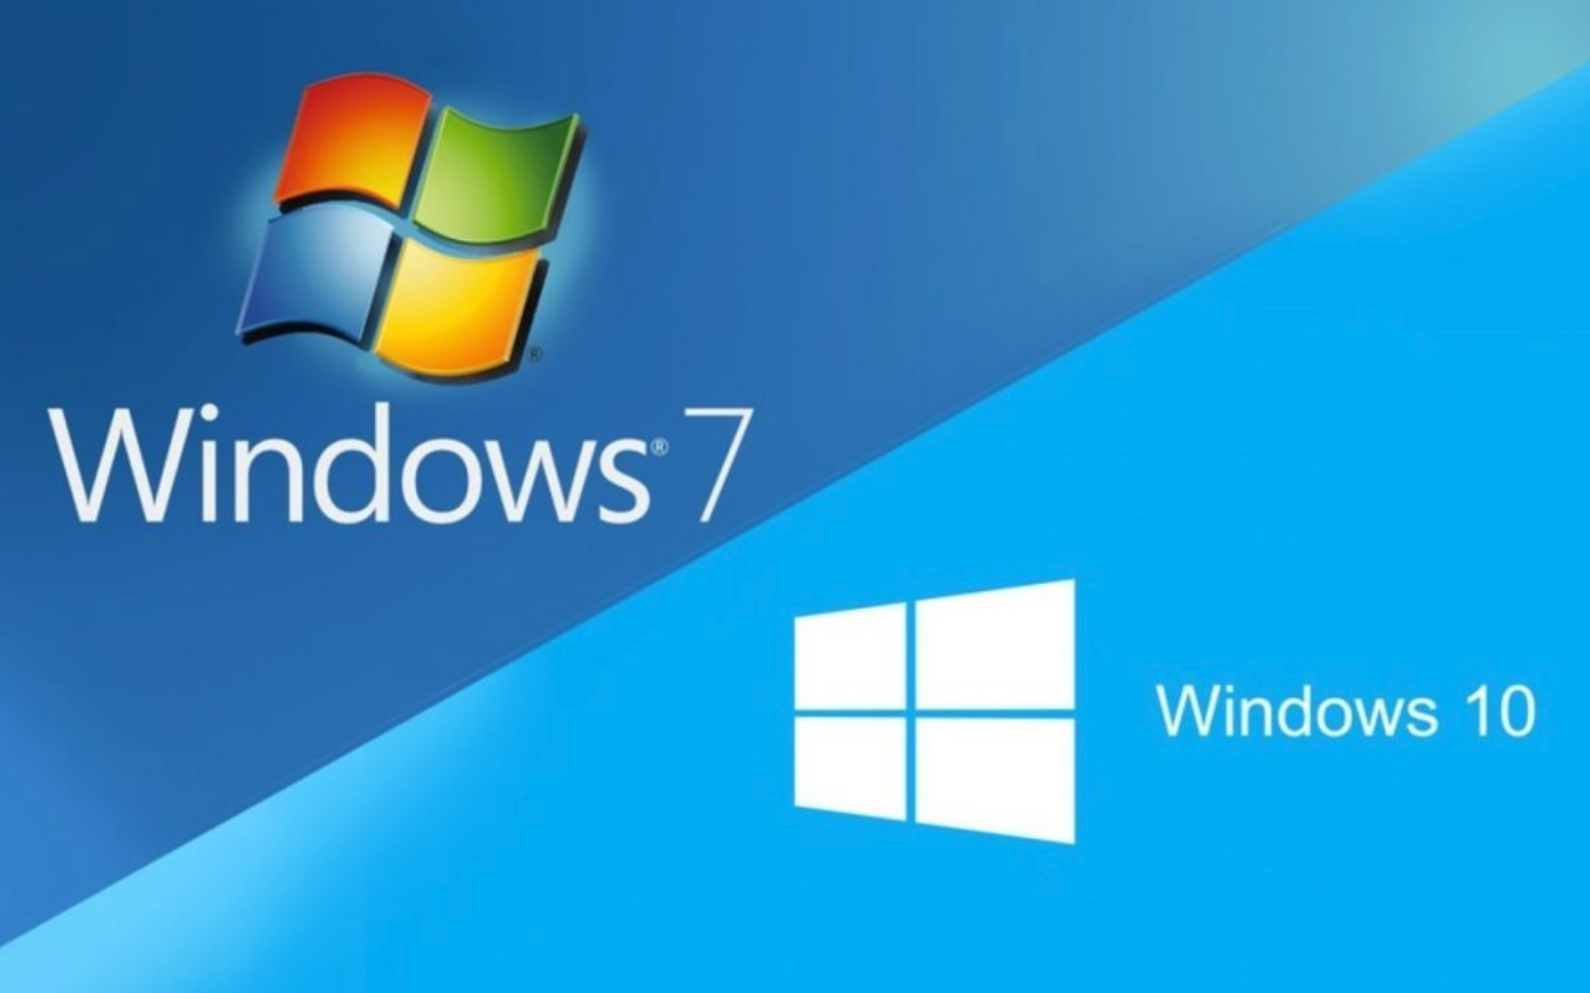 //www.urbannetwork.co.uk/windows-7-end-of-life/